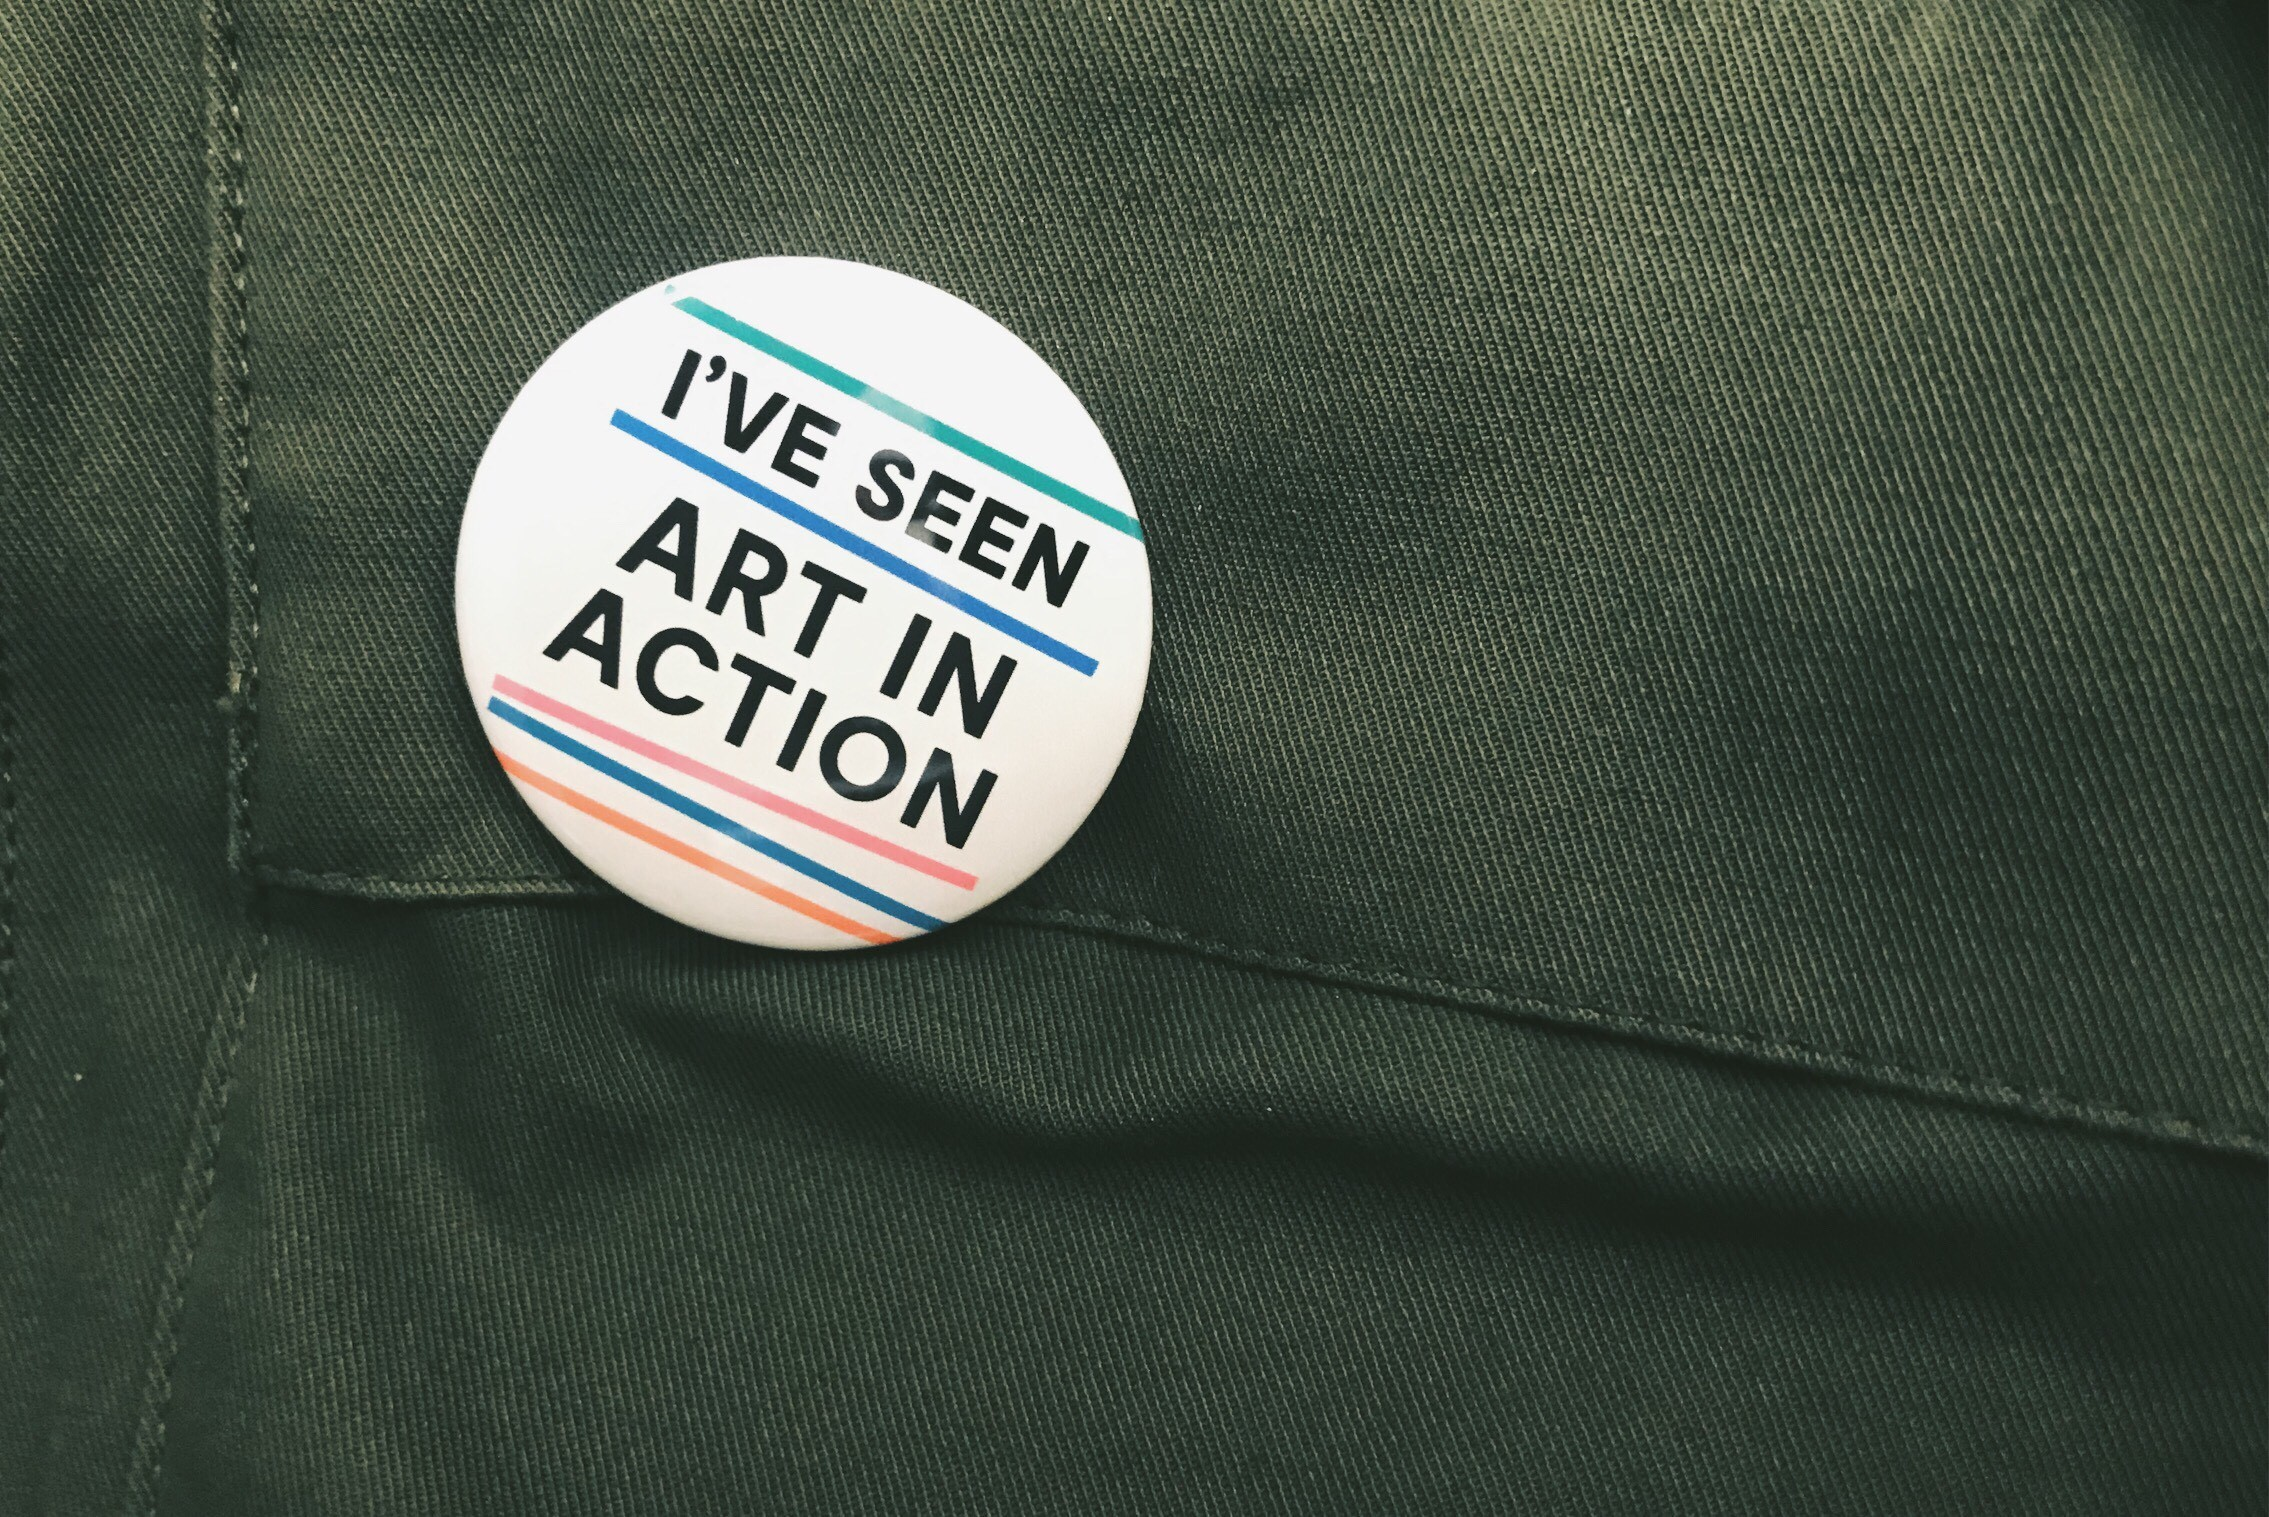 Art_In_Action_Image_Button.jpg